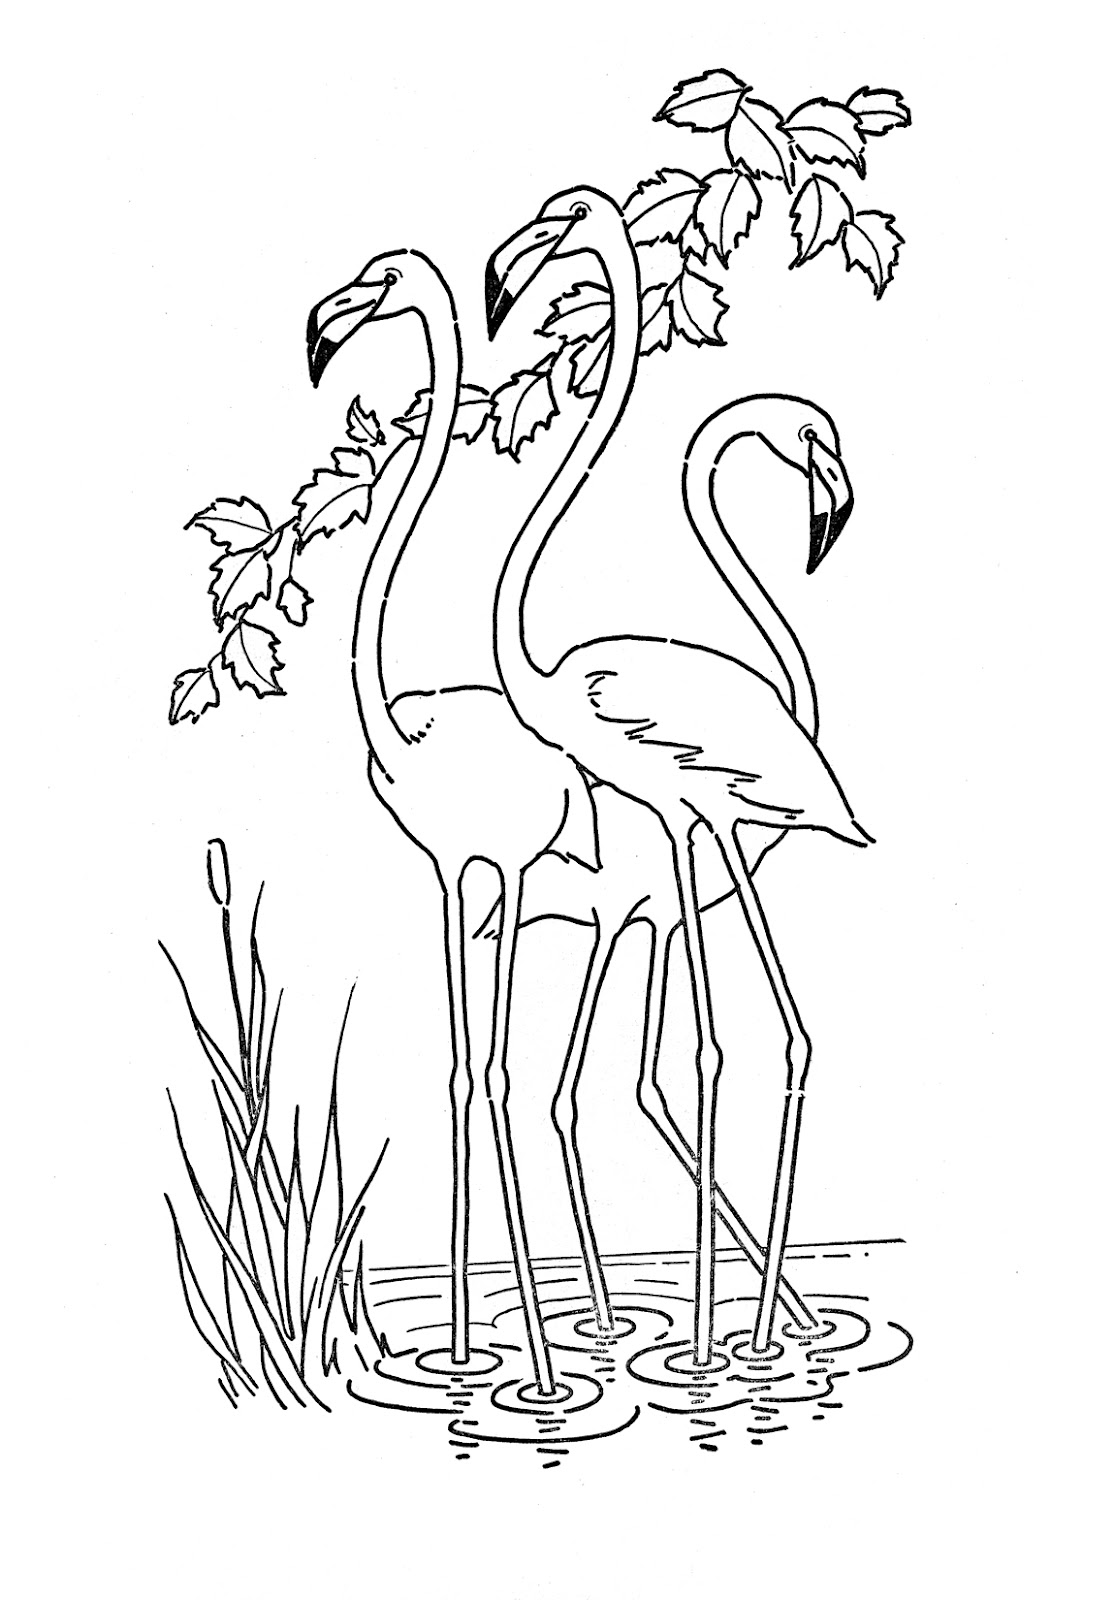 coloring sheet things to color kawaii coloring pages to download and print for free color things sheet coloring to